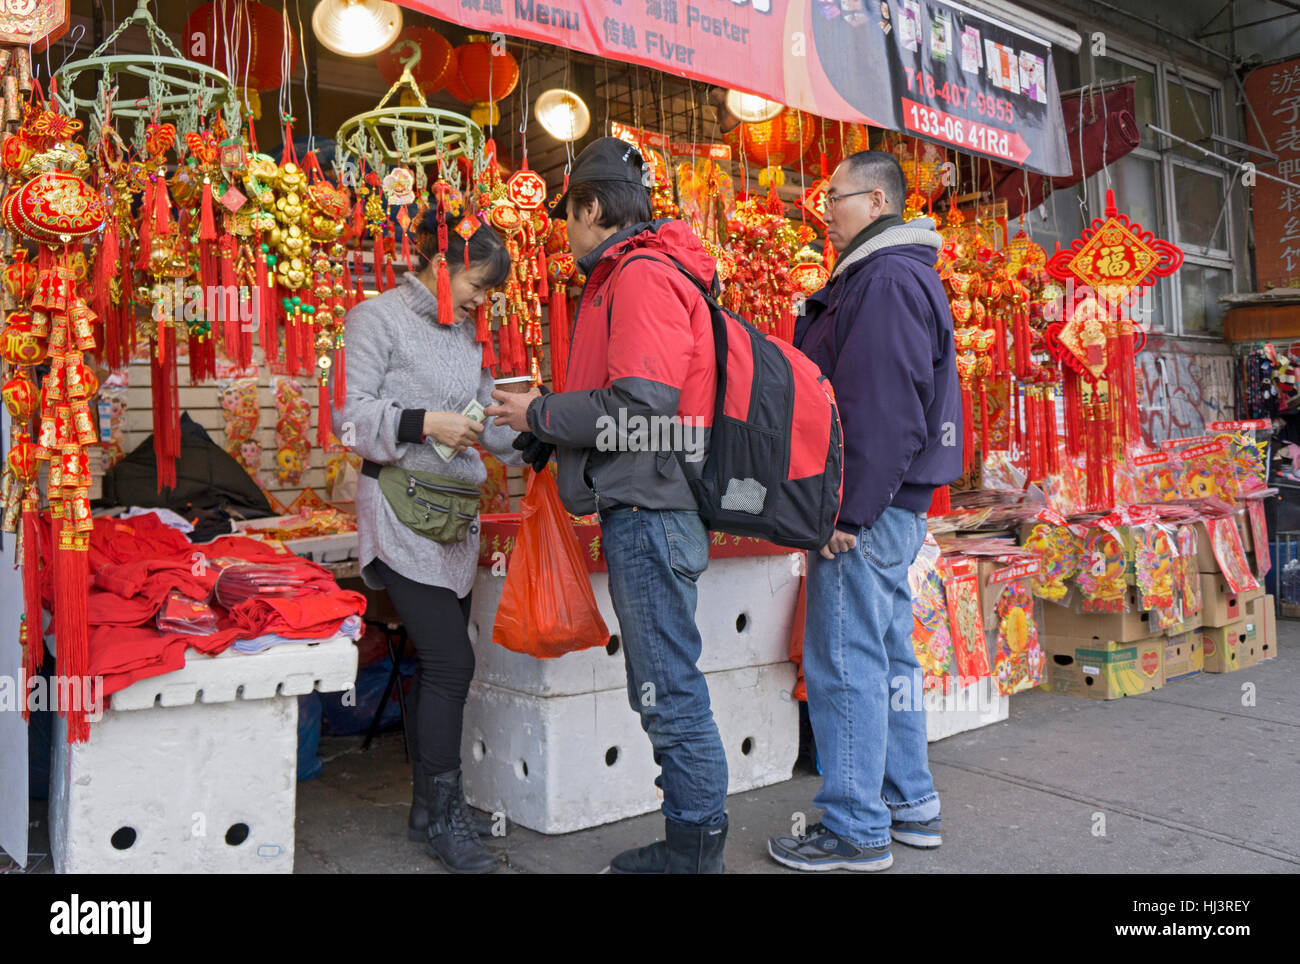 Asian American Men Buying Good Luck Symbols For Chinese New Year